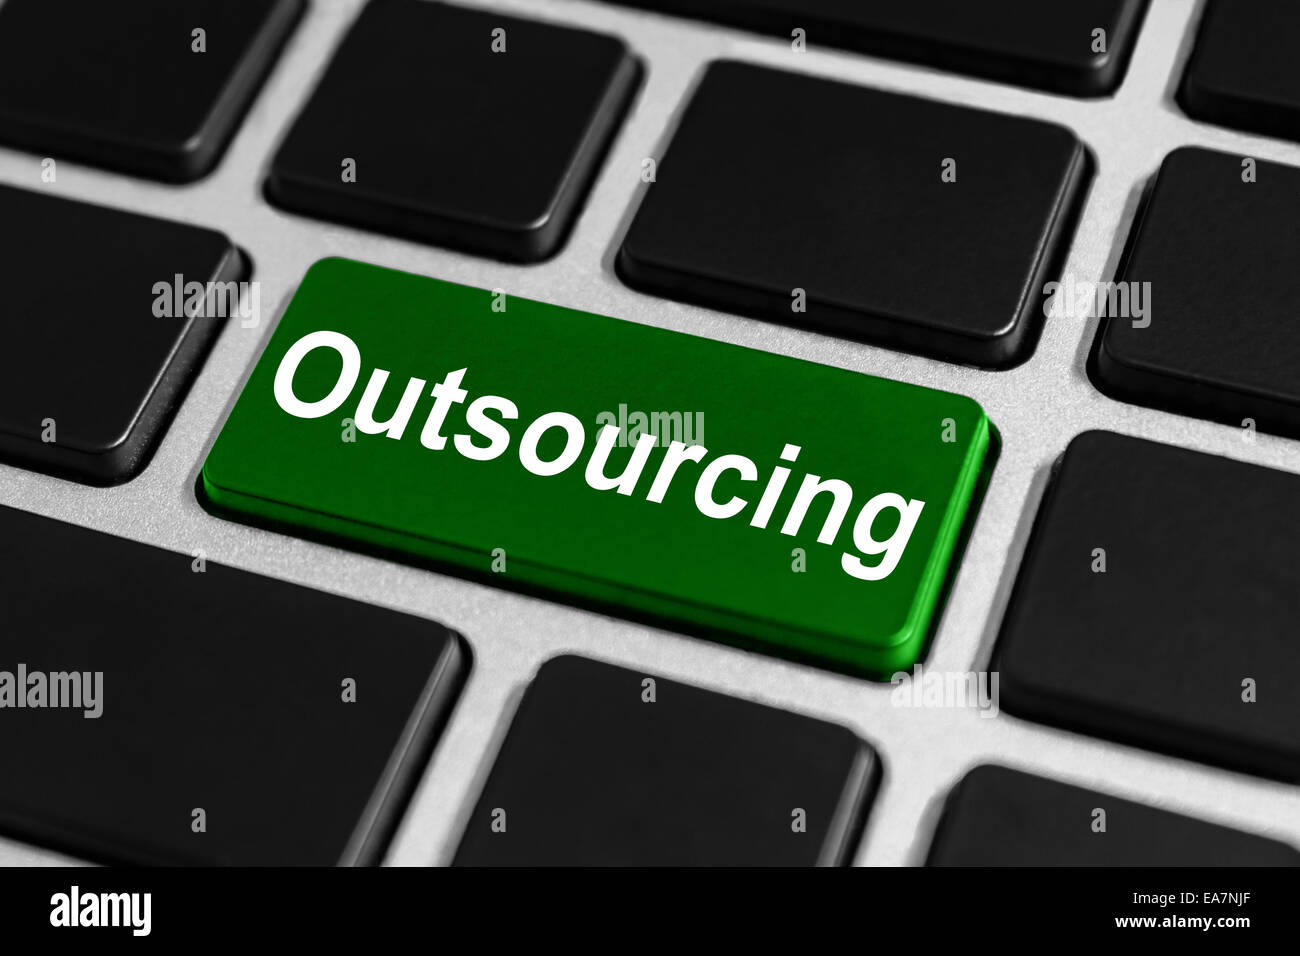 Outsourcing green button on keyboard, business concept - Stock Image